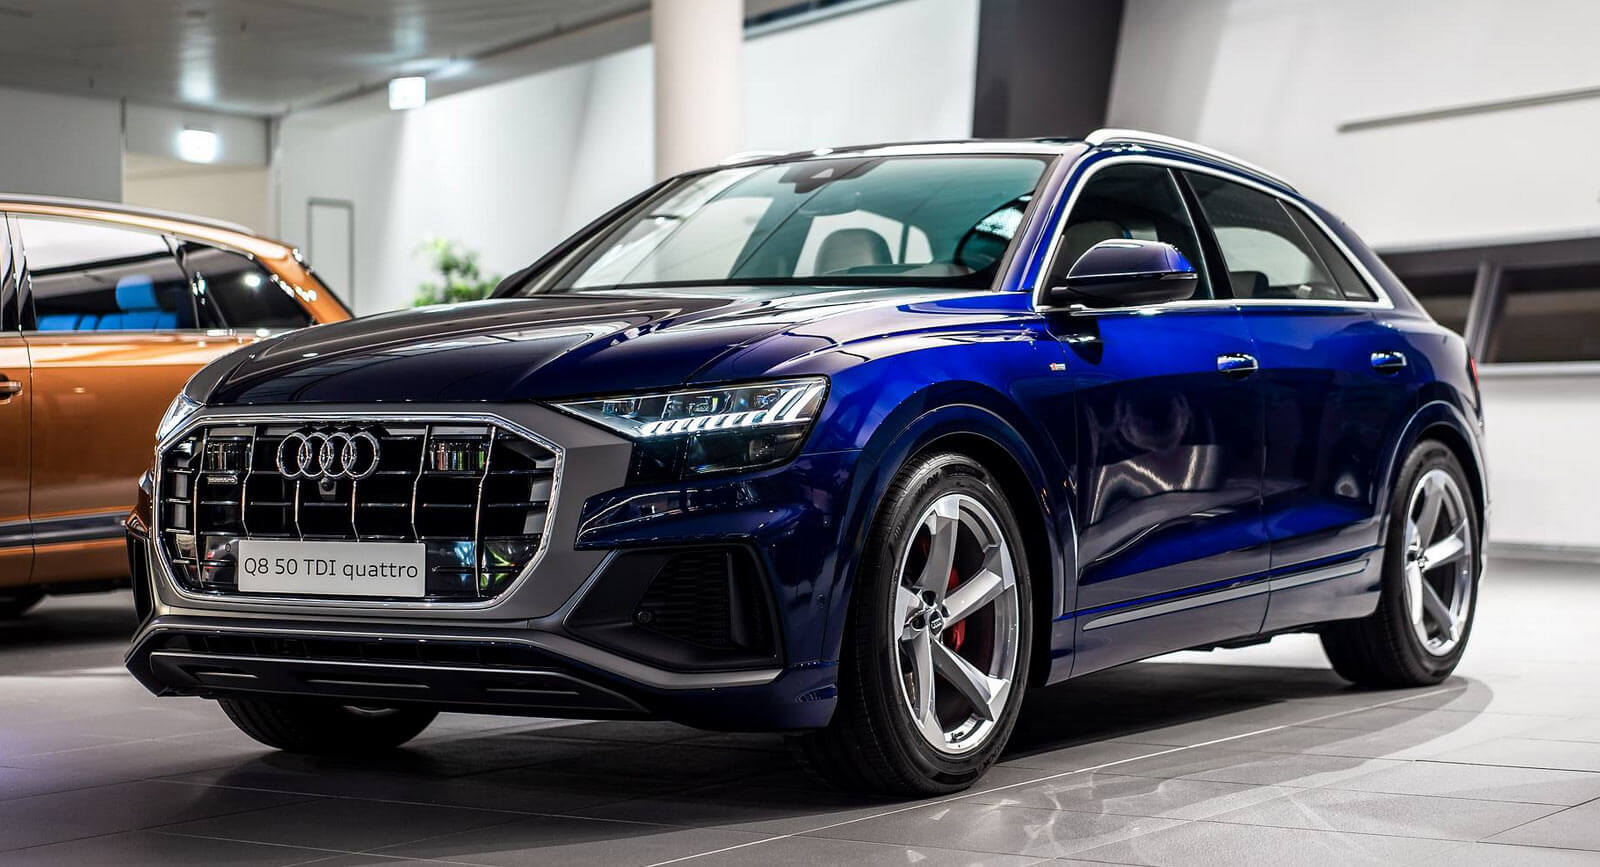 Navarra Blue Audi Q8 Spotted In Showroom With Bespoke